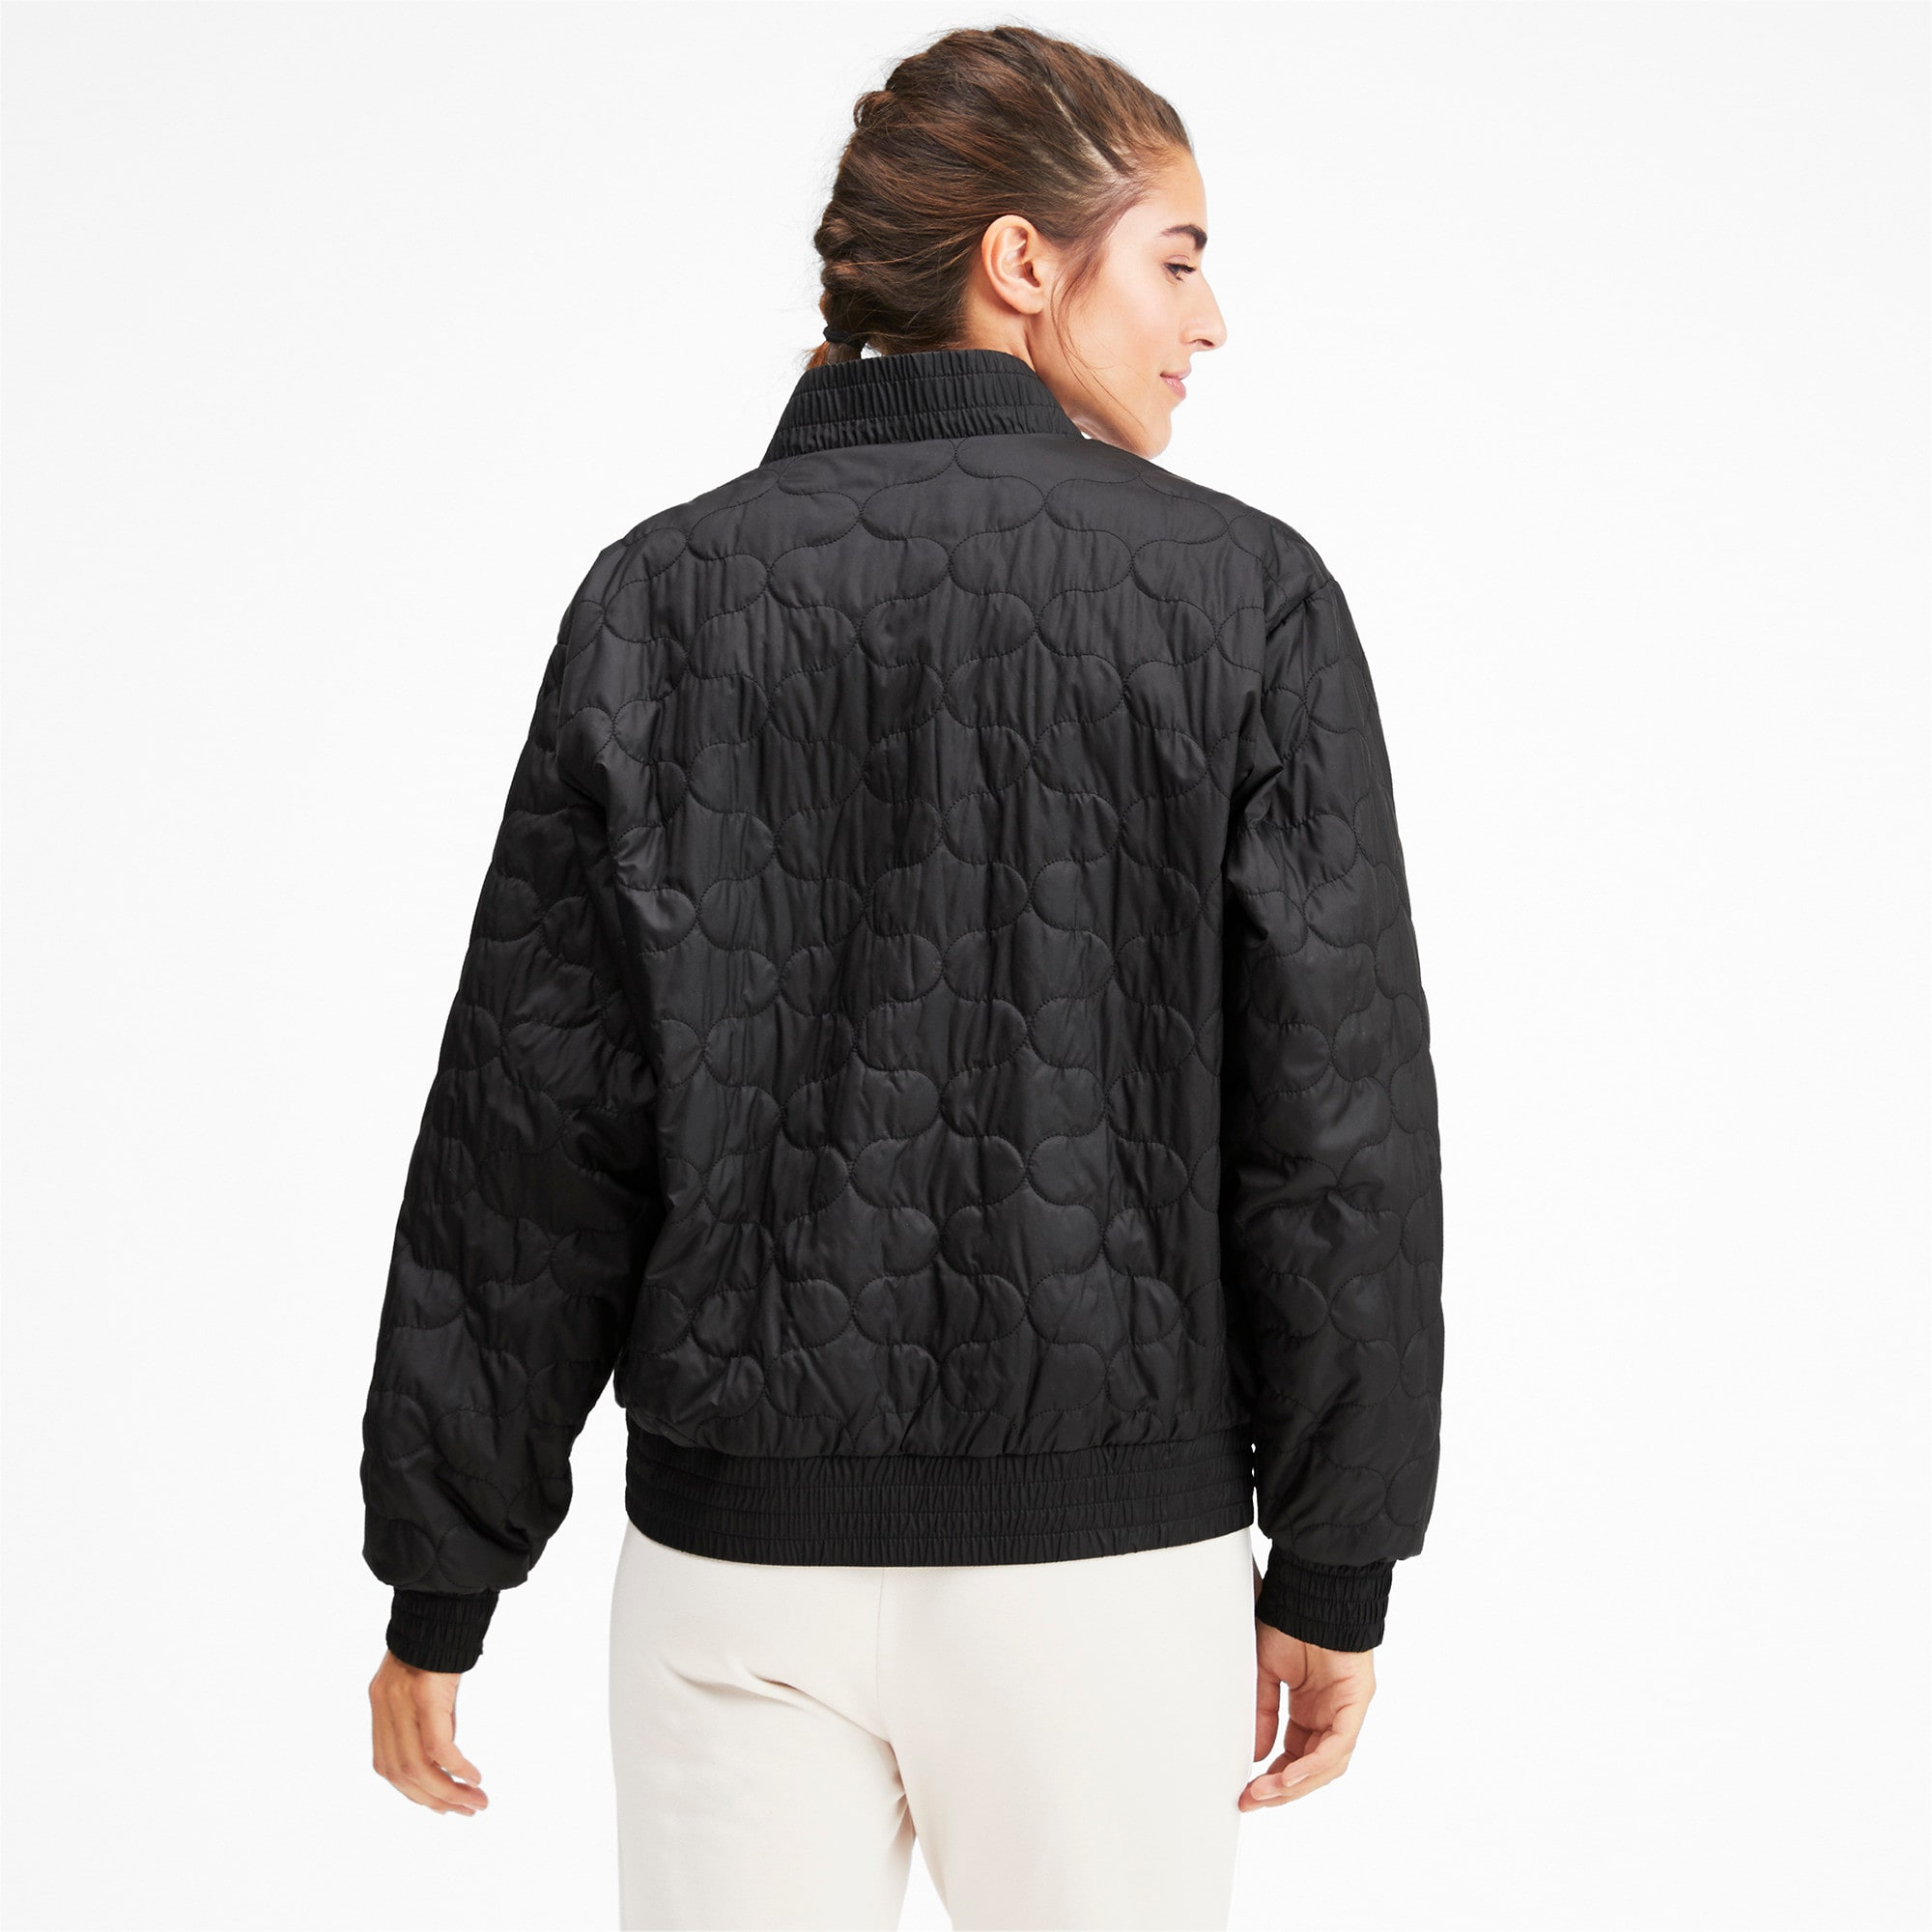 Thumbnail 3 of Woven Women's Bomber Jacket, Puma Black, medium